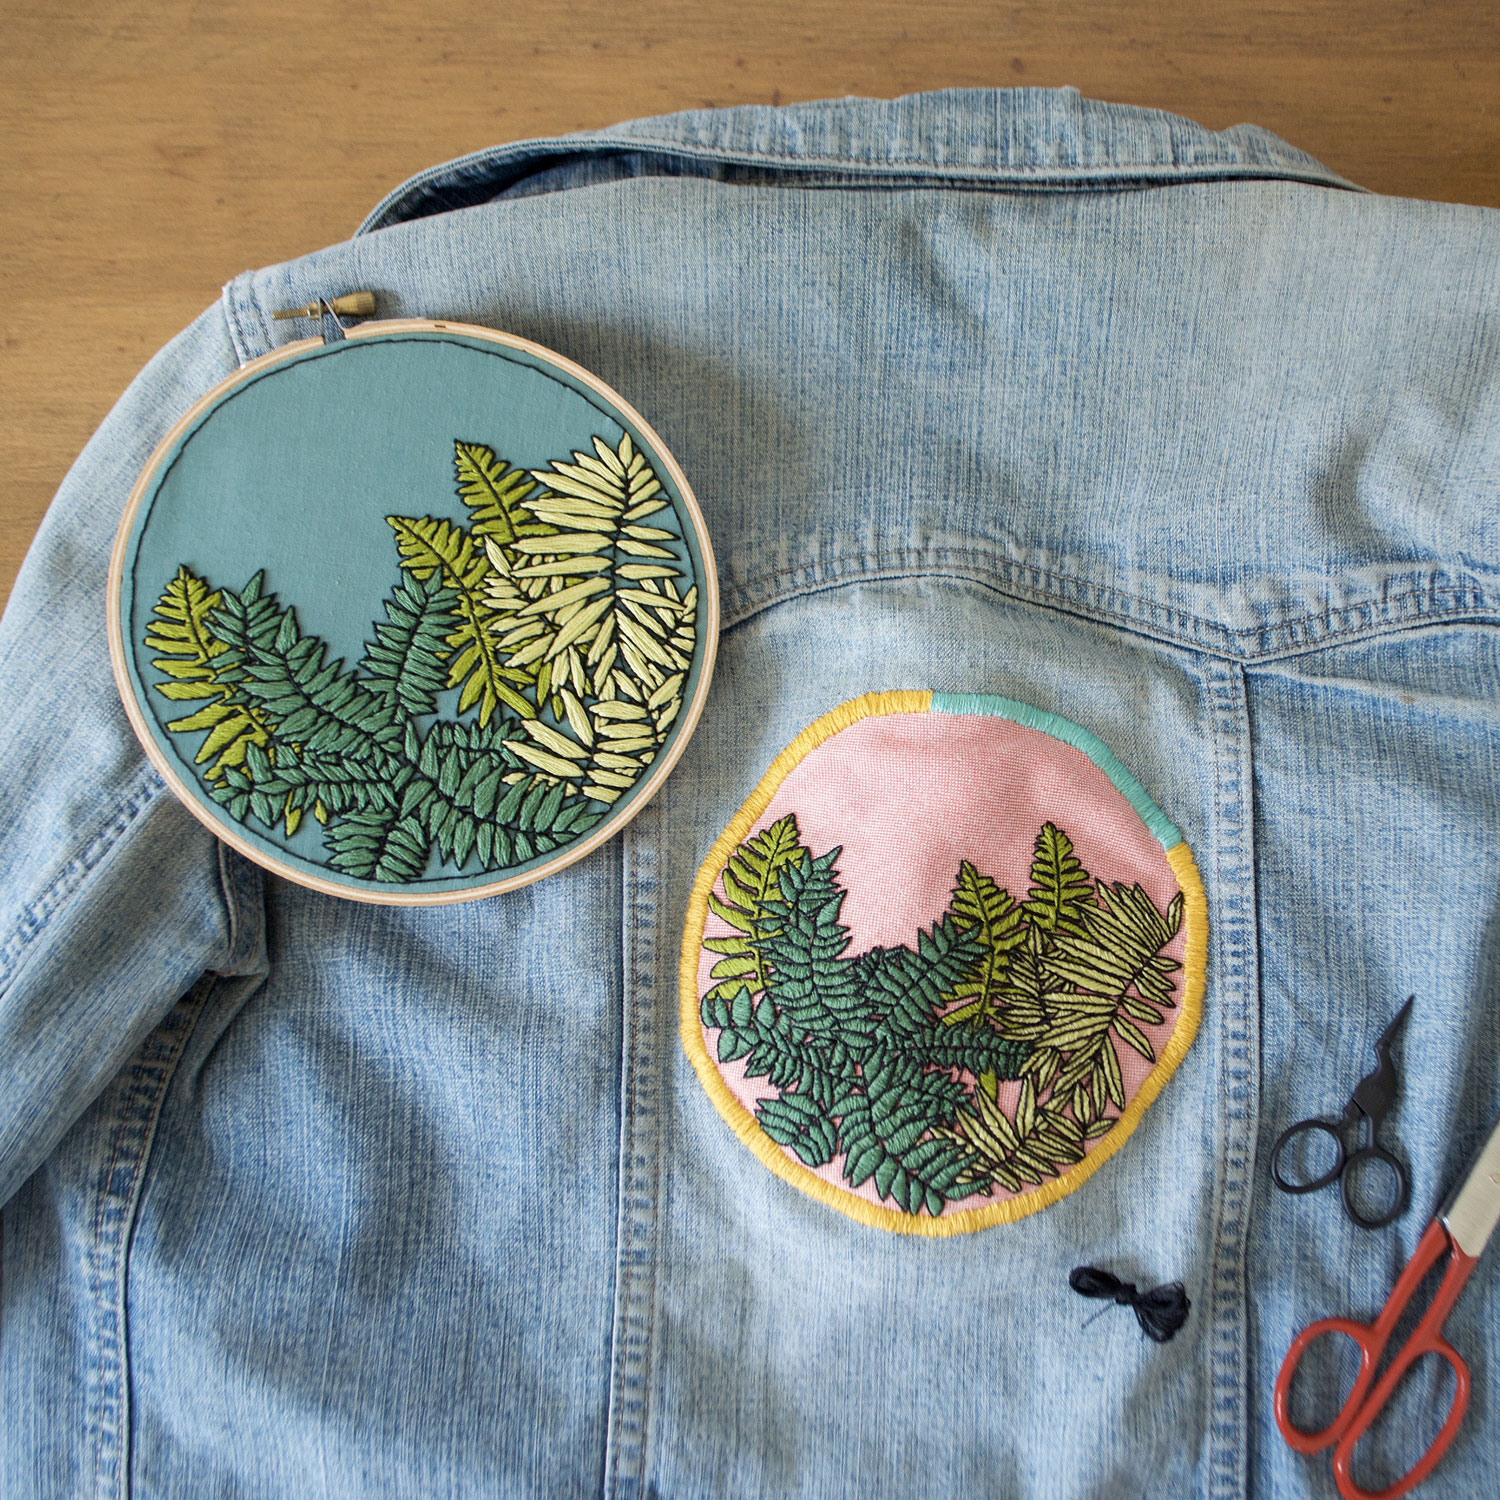 Step 5: Use satin stitch to complete your patch!